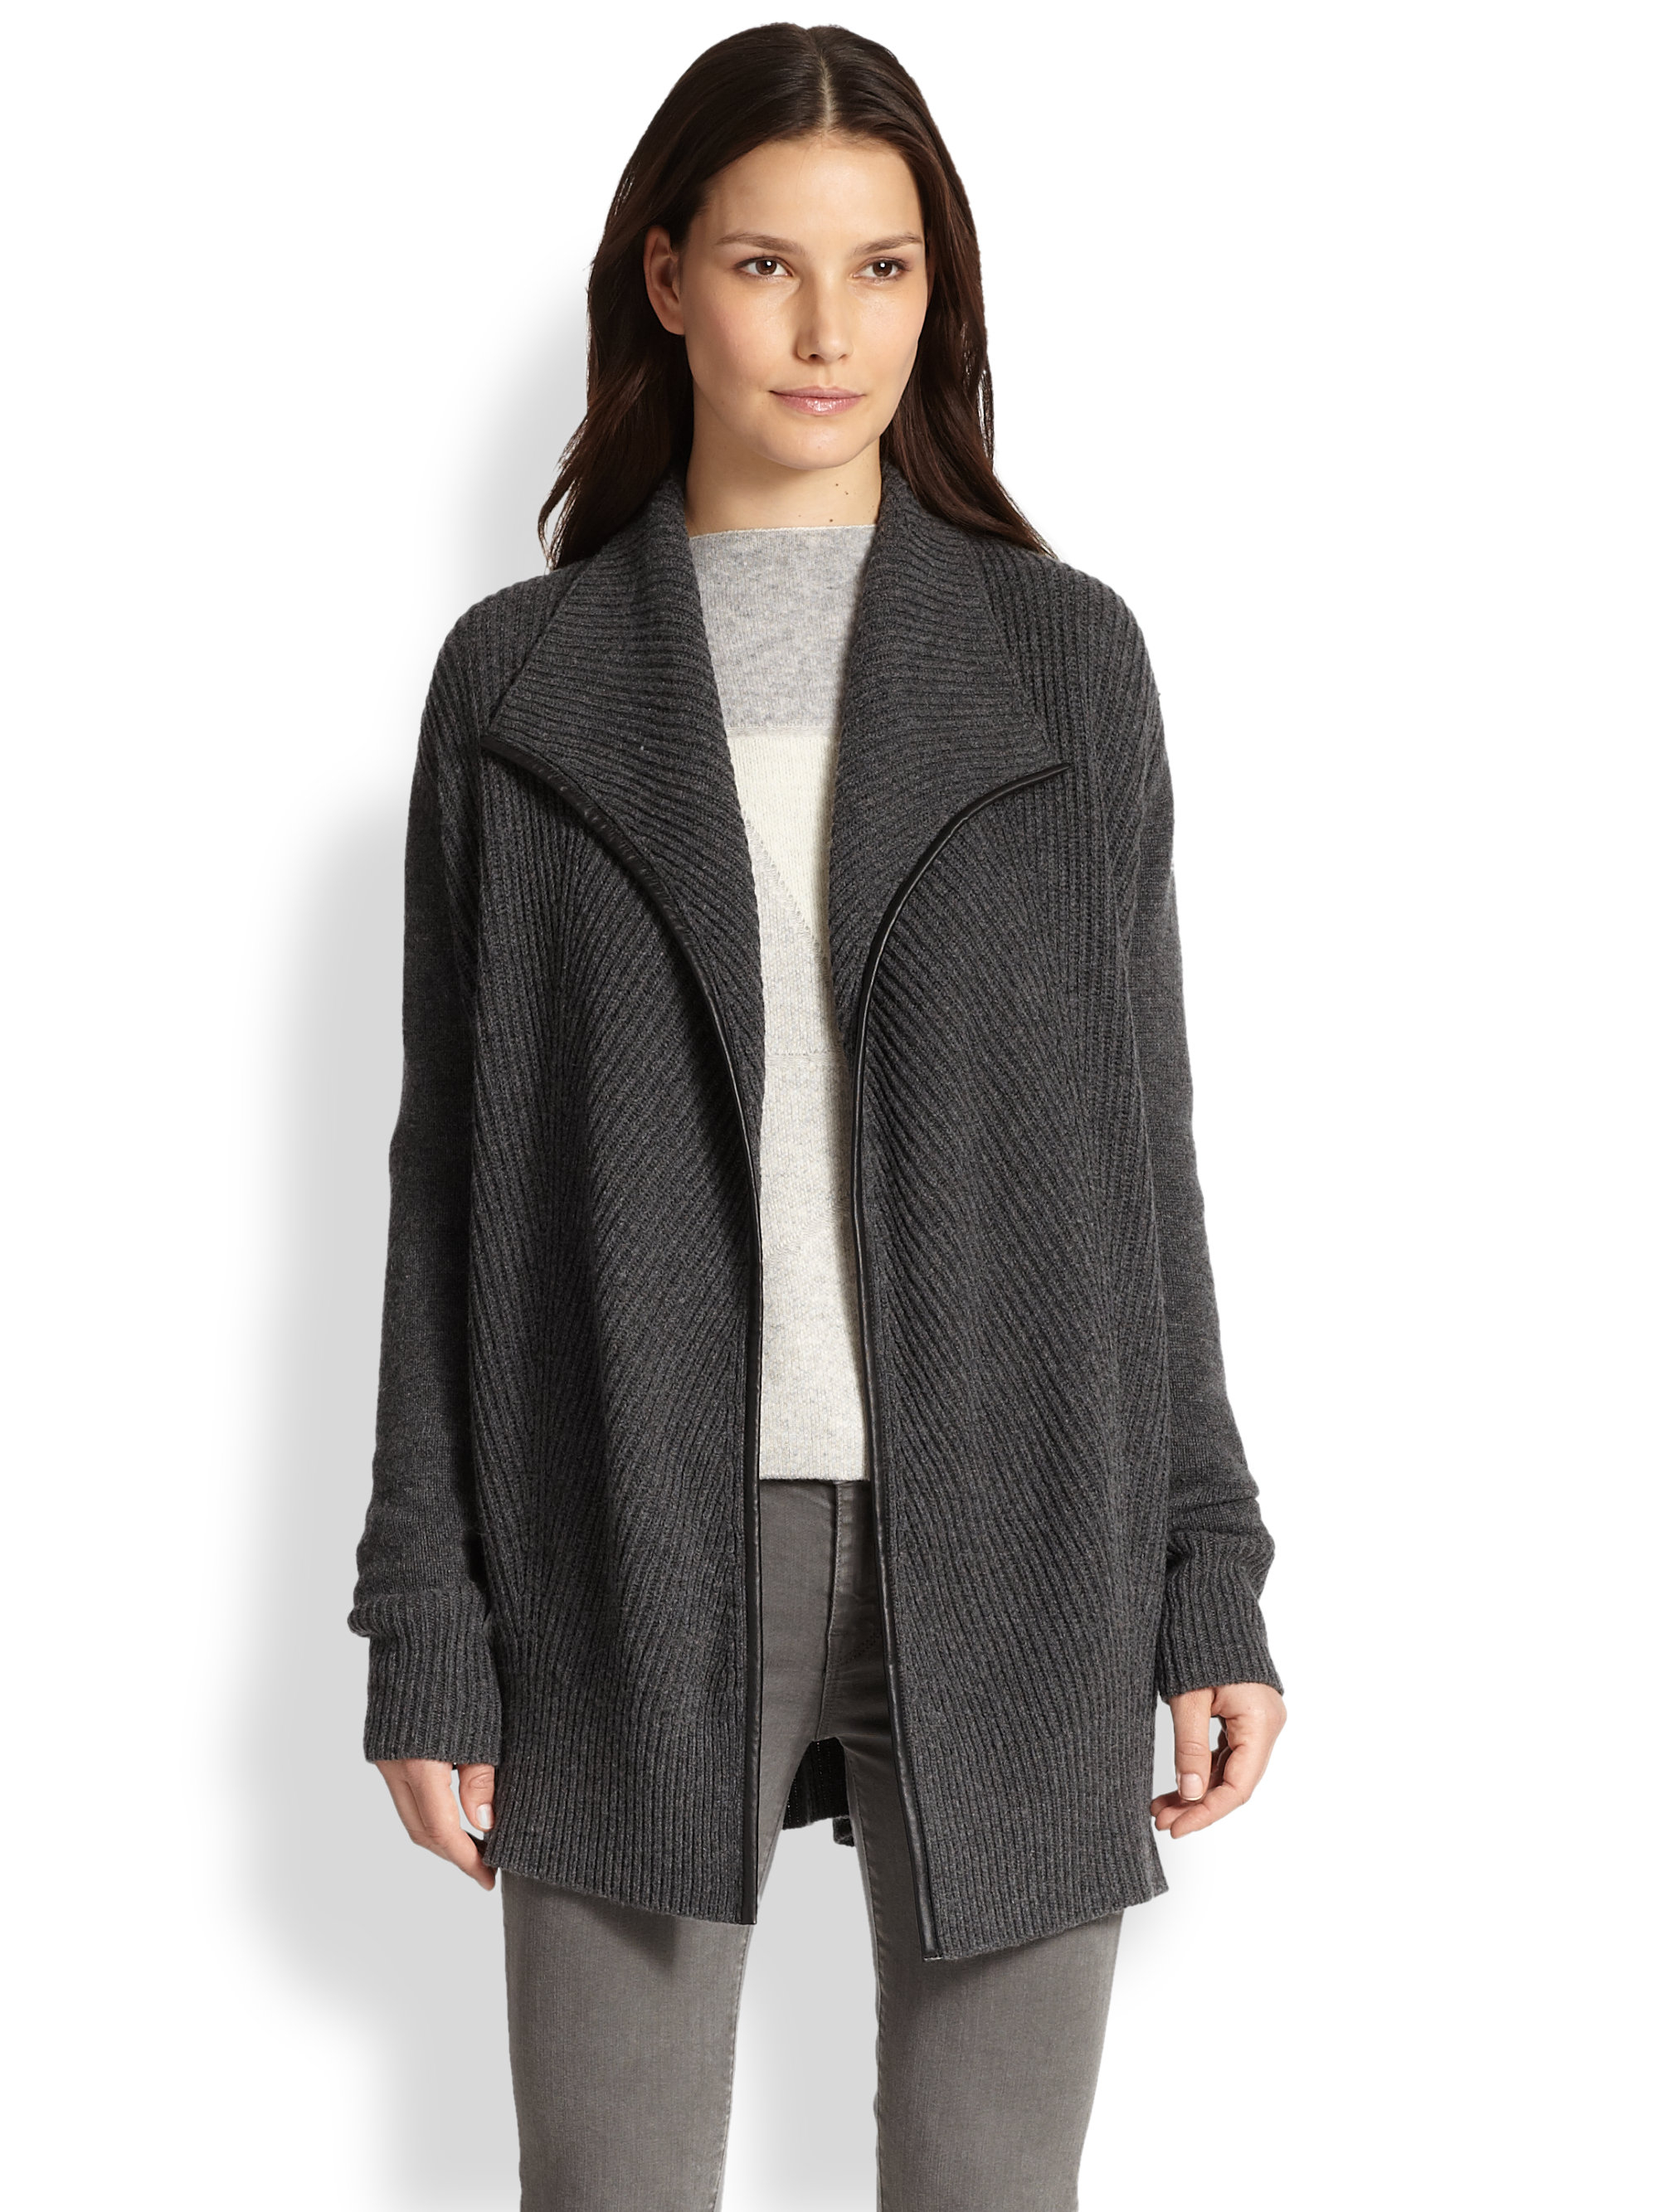 Vince Leather-Trimmed Wool & Cashmere Draped Cardigan in Gray | Lyst